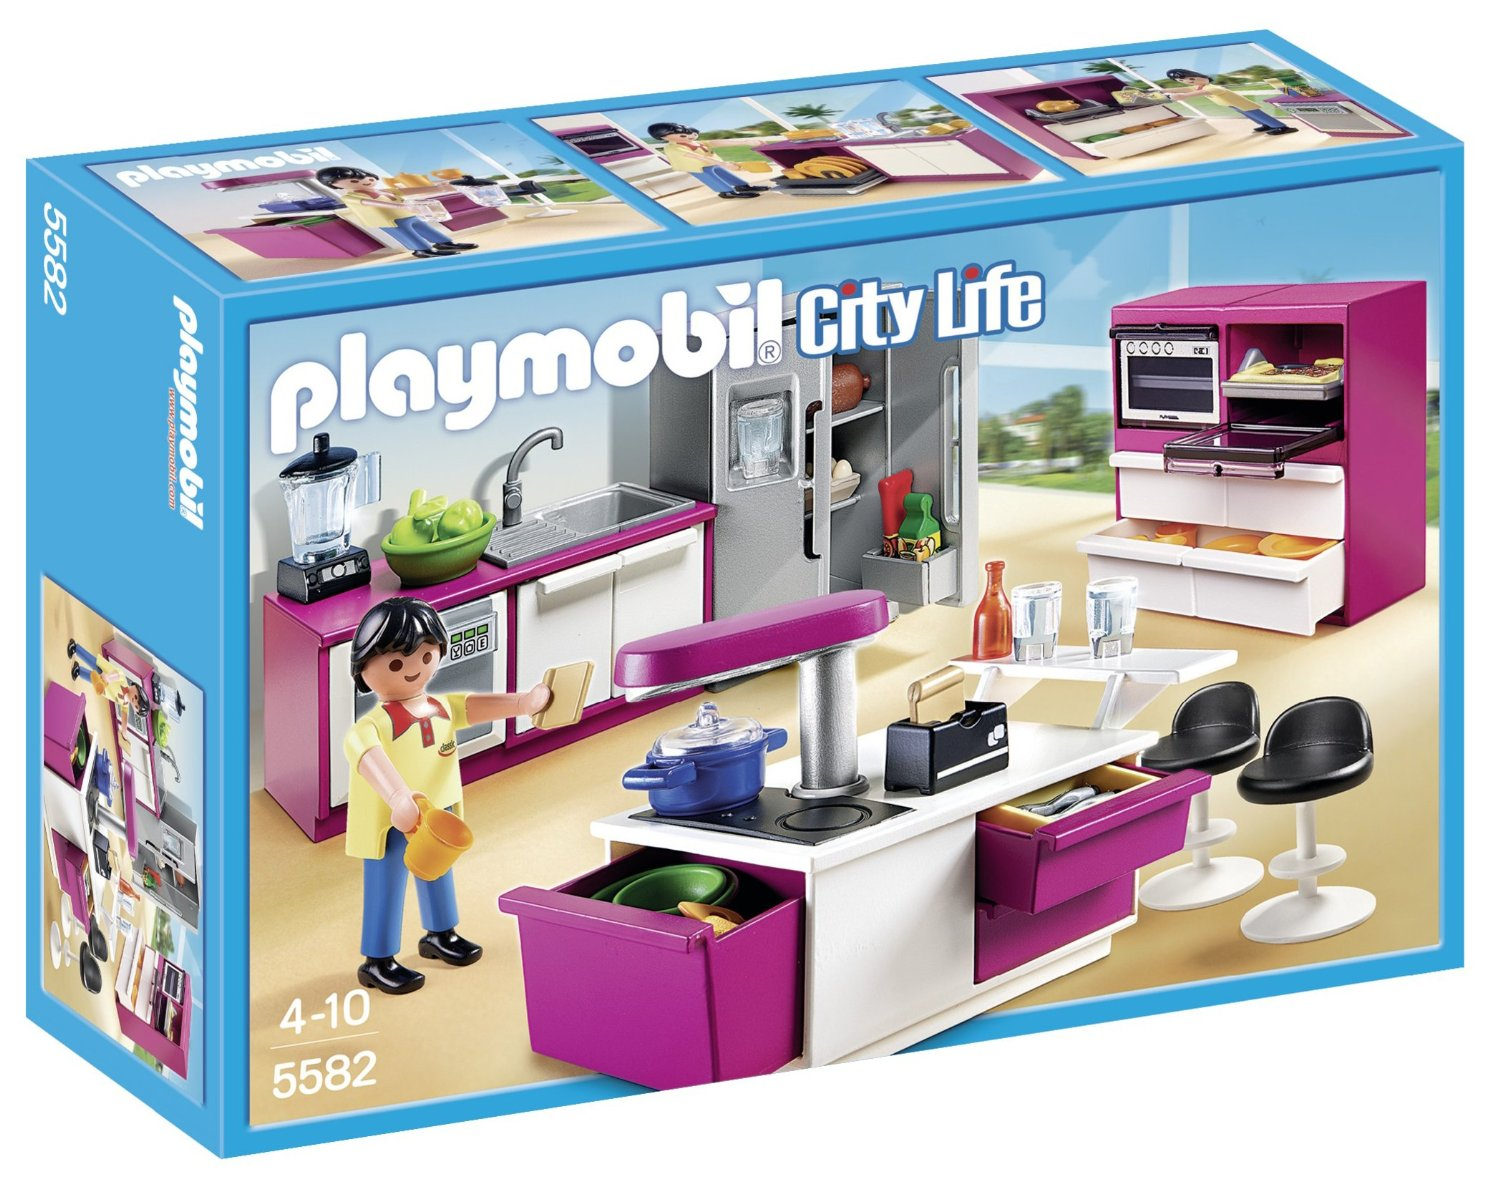 Eclairage Maison Playmobil Maison Moderne City Life Playmobil Amazon